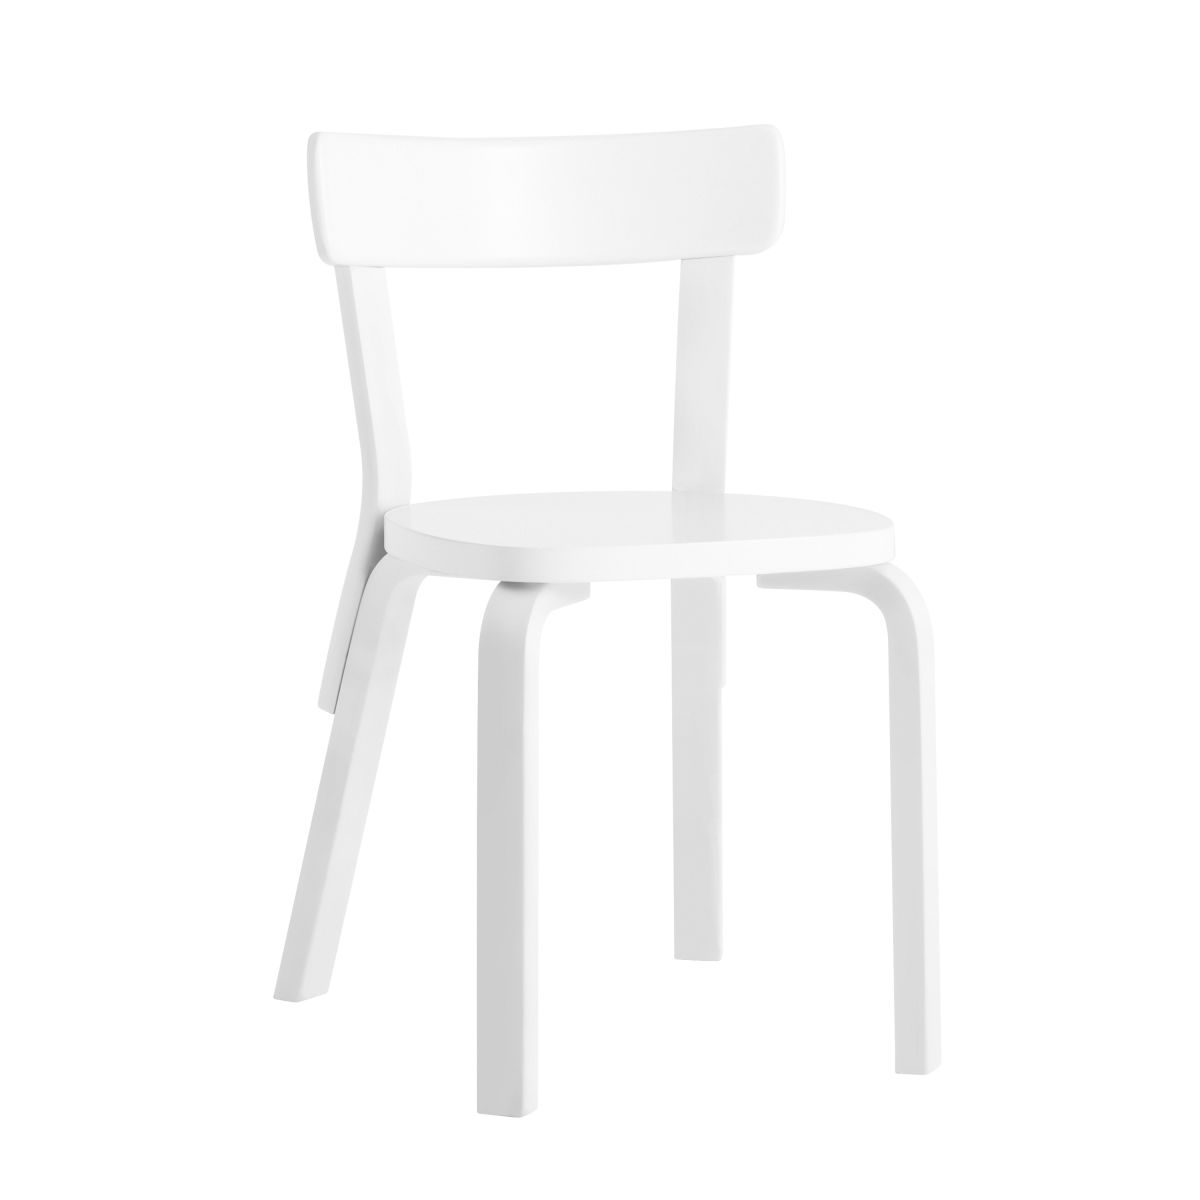 Chair-69-White-Lacquer